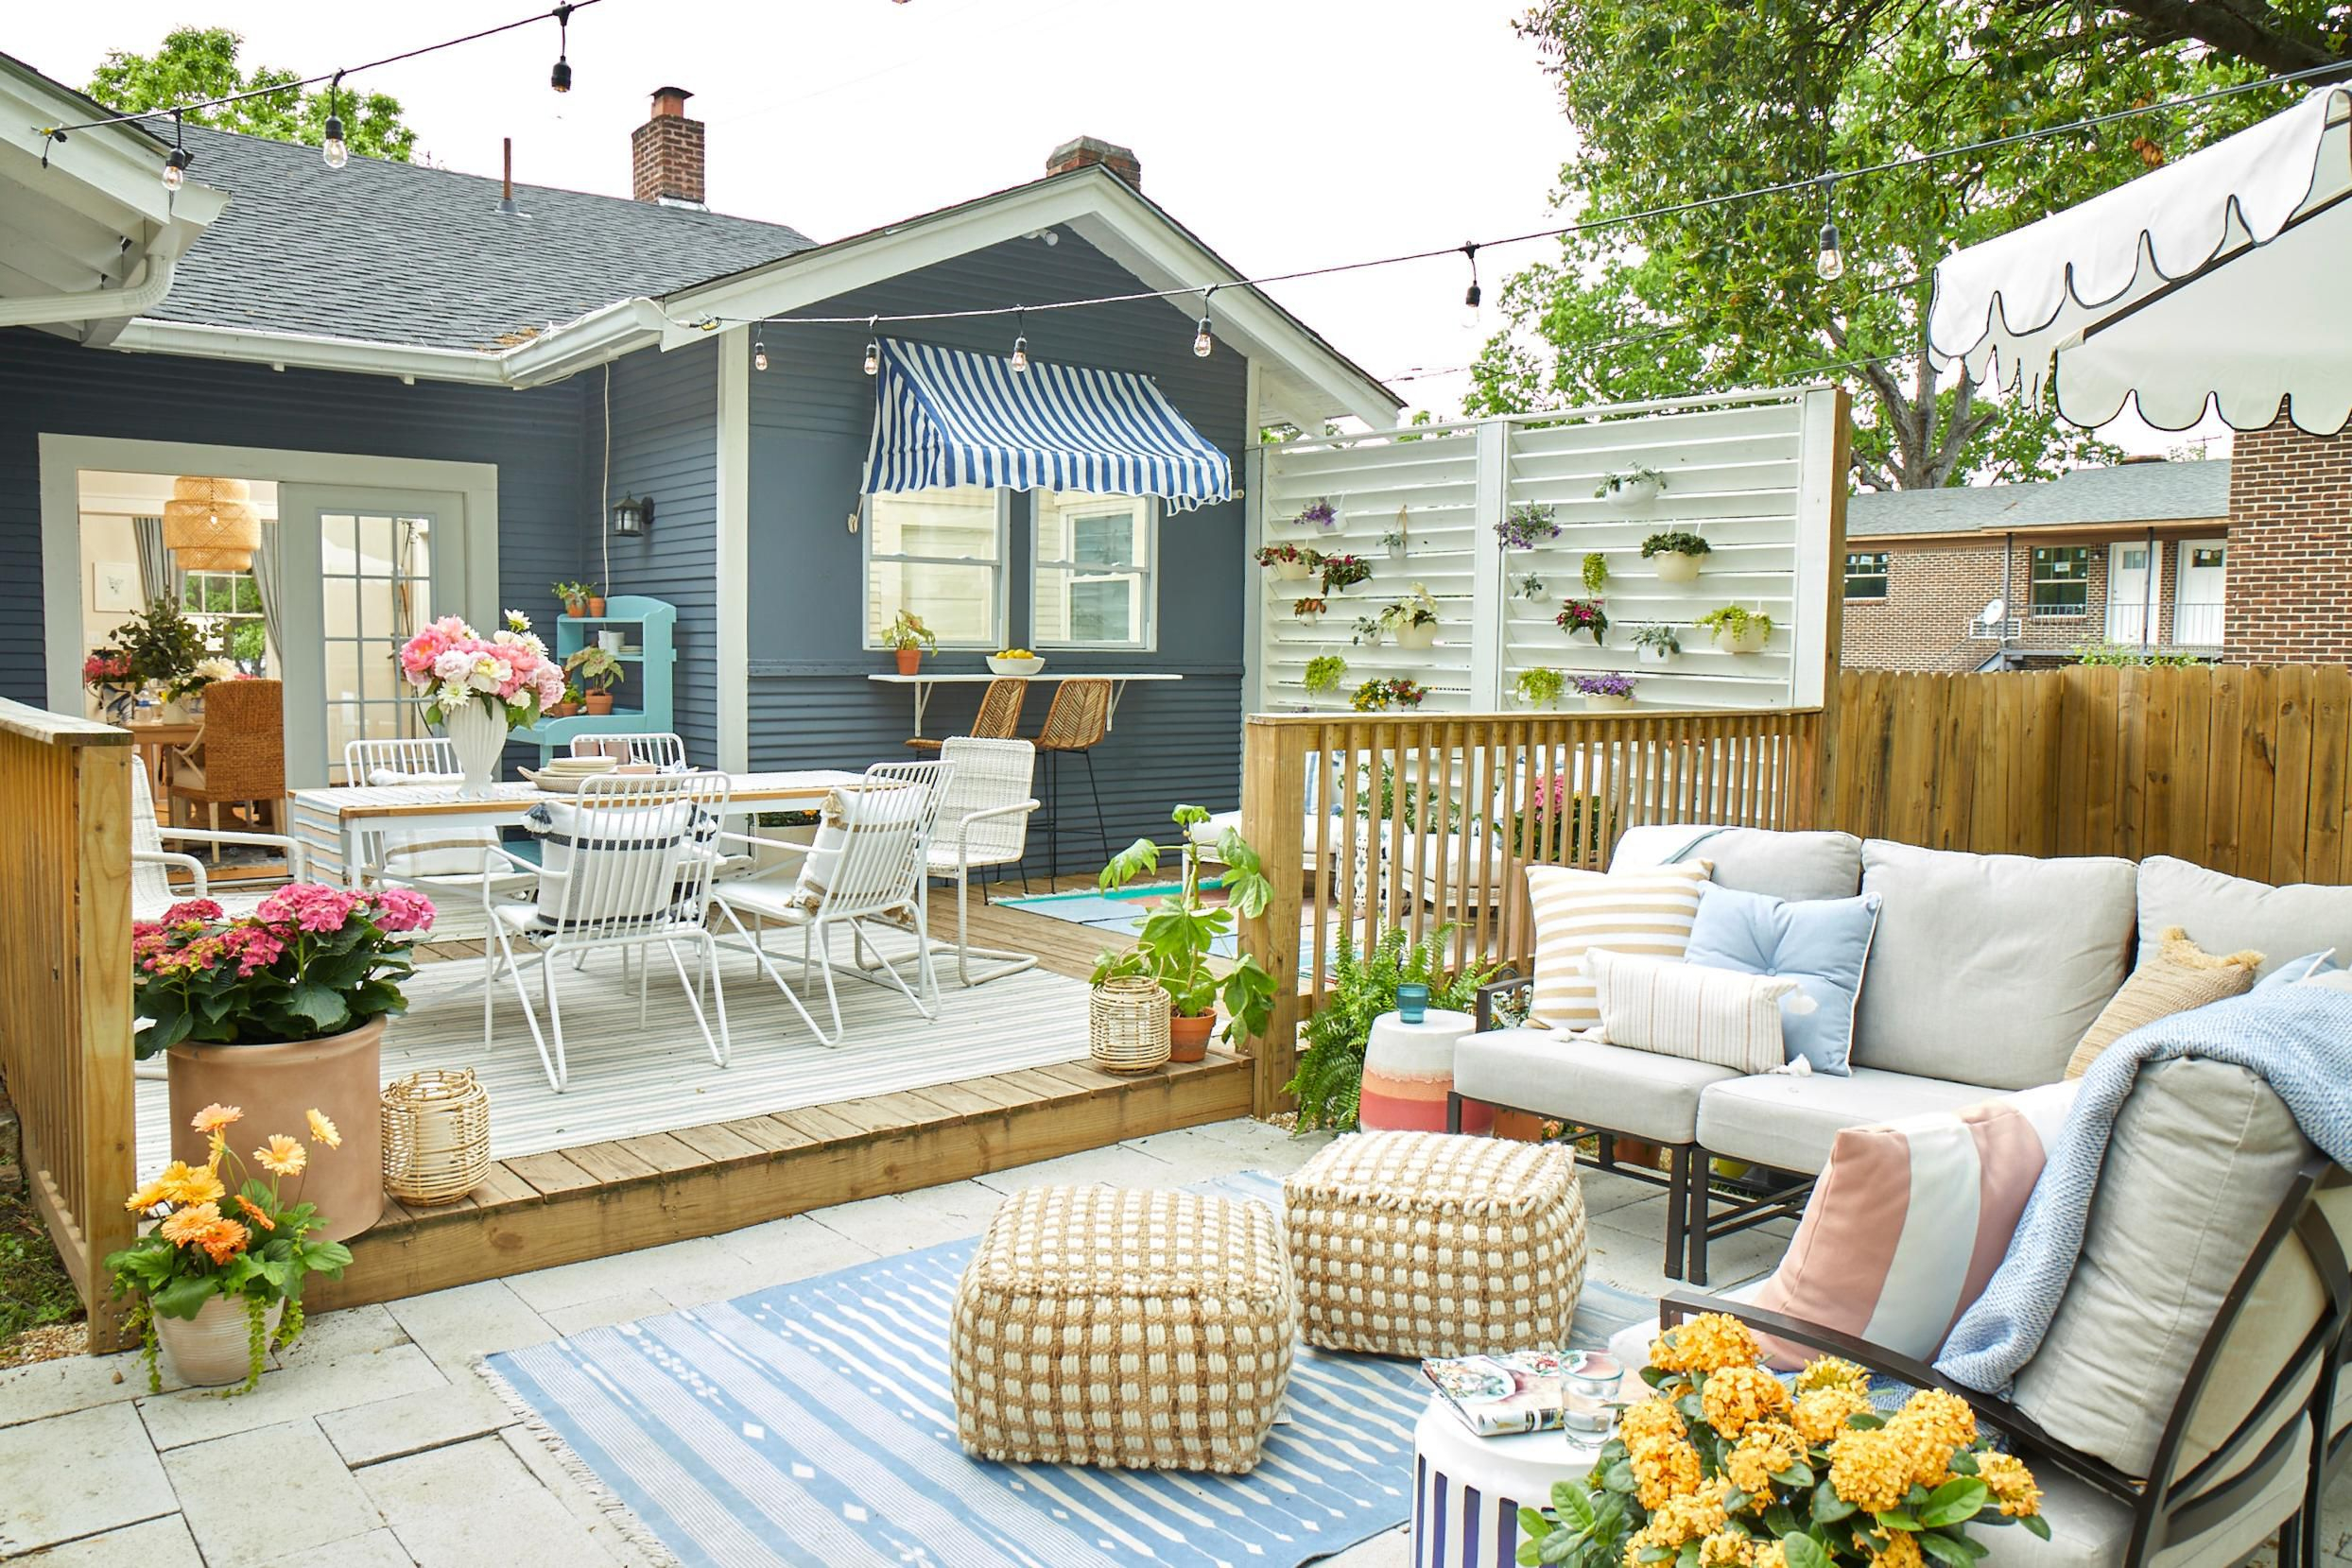 35 Best Patio And Porch Design Ideas Decorating Your Outdoor Space for 16 Awesome Concepts of How to Make Backyard Decorating Ideas Home